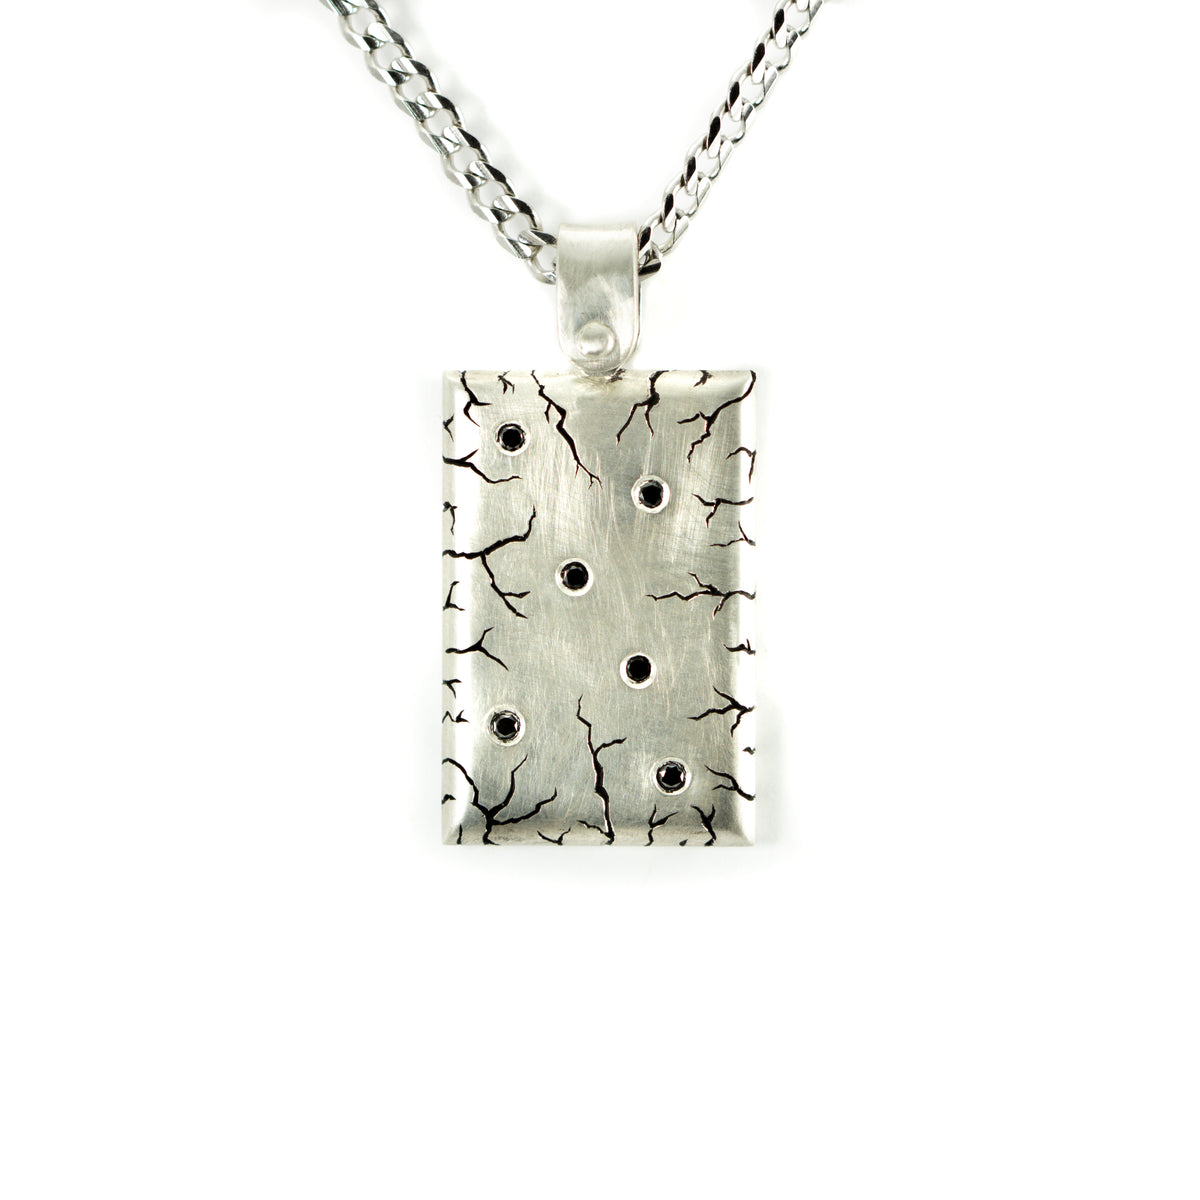 Silver, heavy pendant with hand engraving and black diamonds. On chain